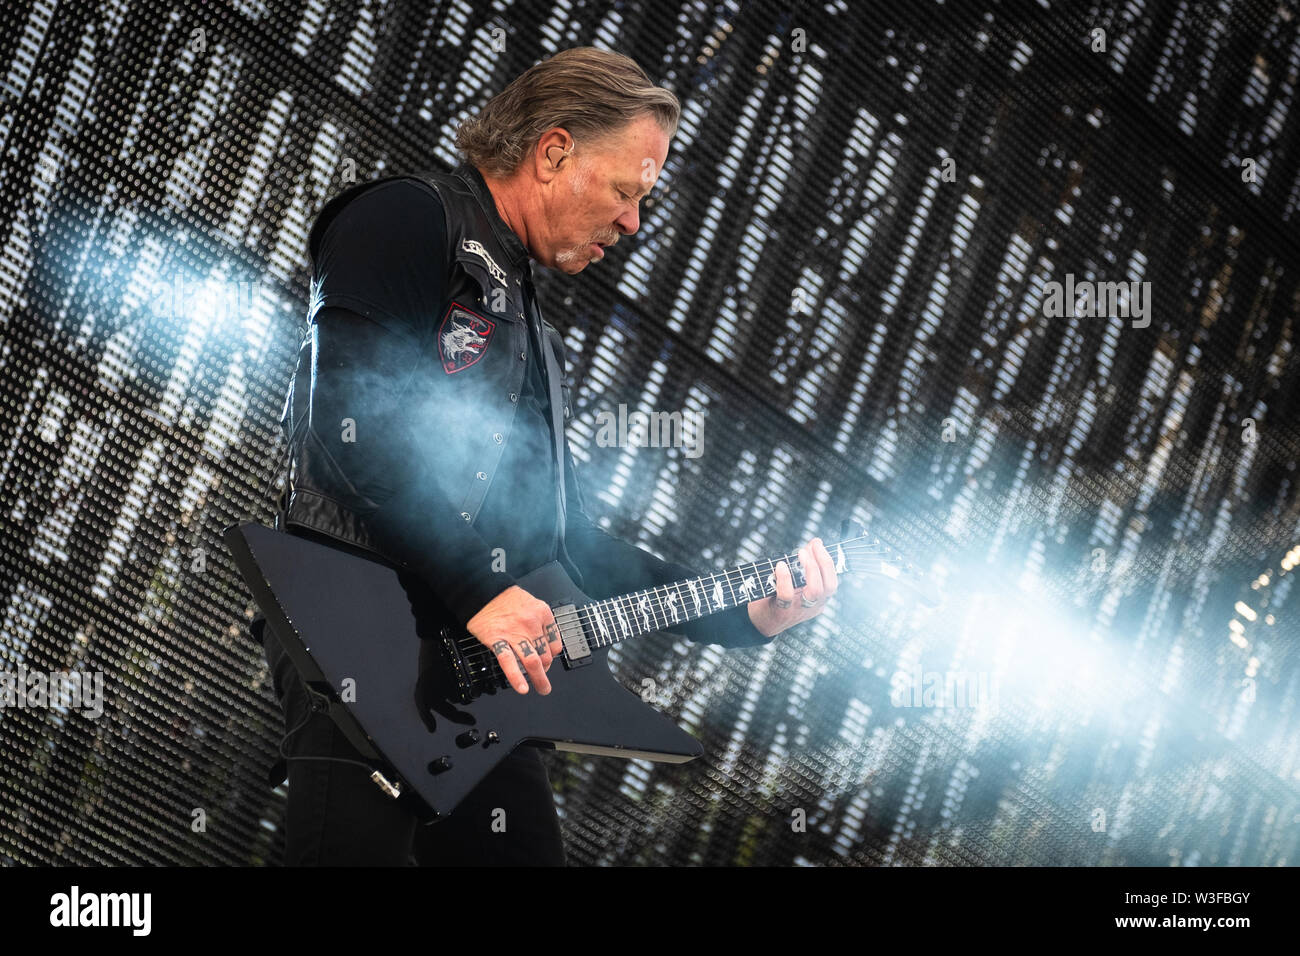 Trondheim, Norway - July 13th, 2019. The American heavy metal band Metallica performs live concerts at Granåsen Arena in Trondheim. Here vocalist and guitarist James Hetfield is seen live on stage. (Photo credit: Gonzales Photo - Tor Atle Kleven). - Stock Image